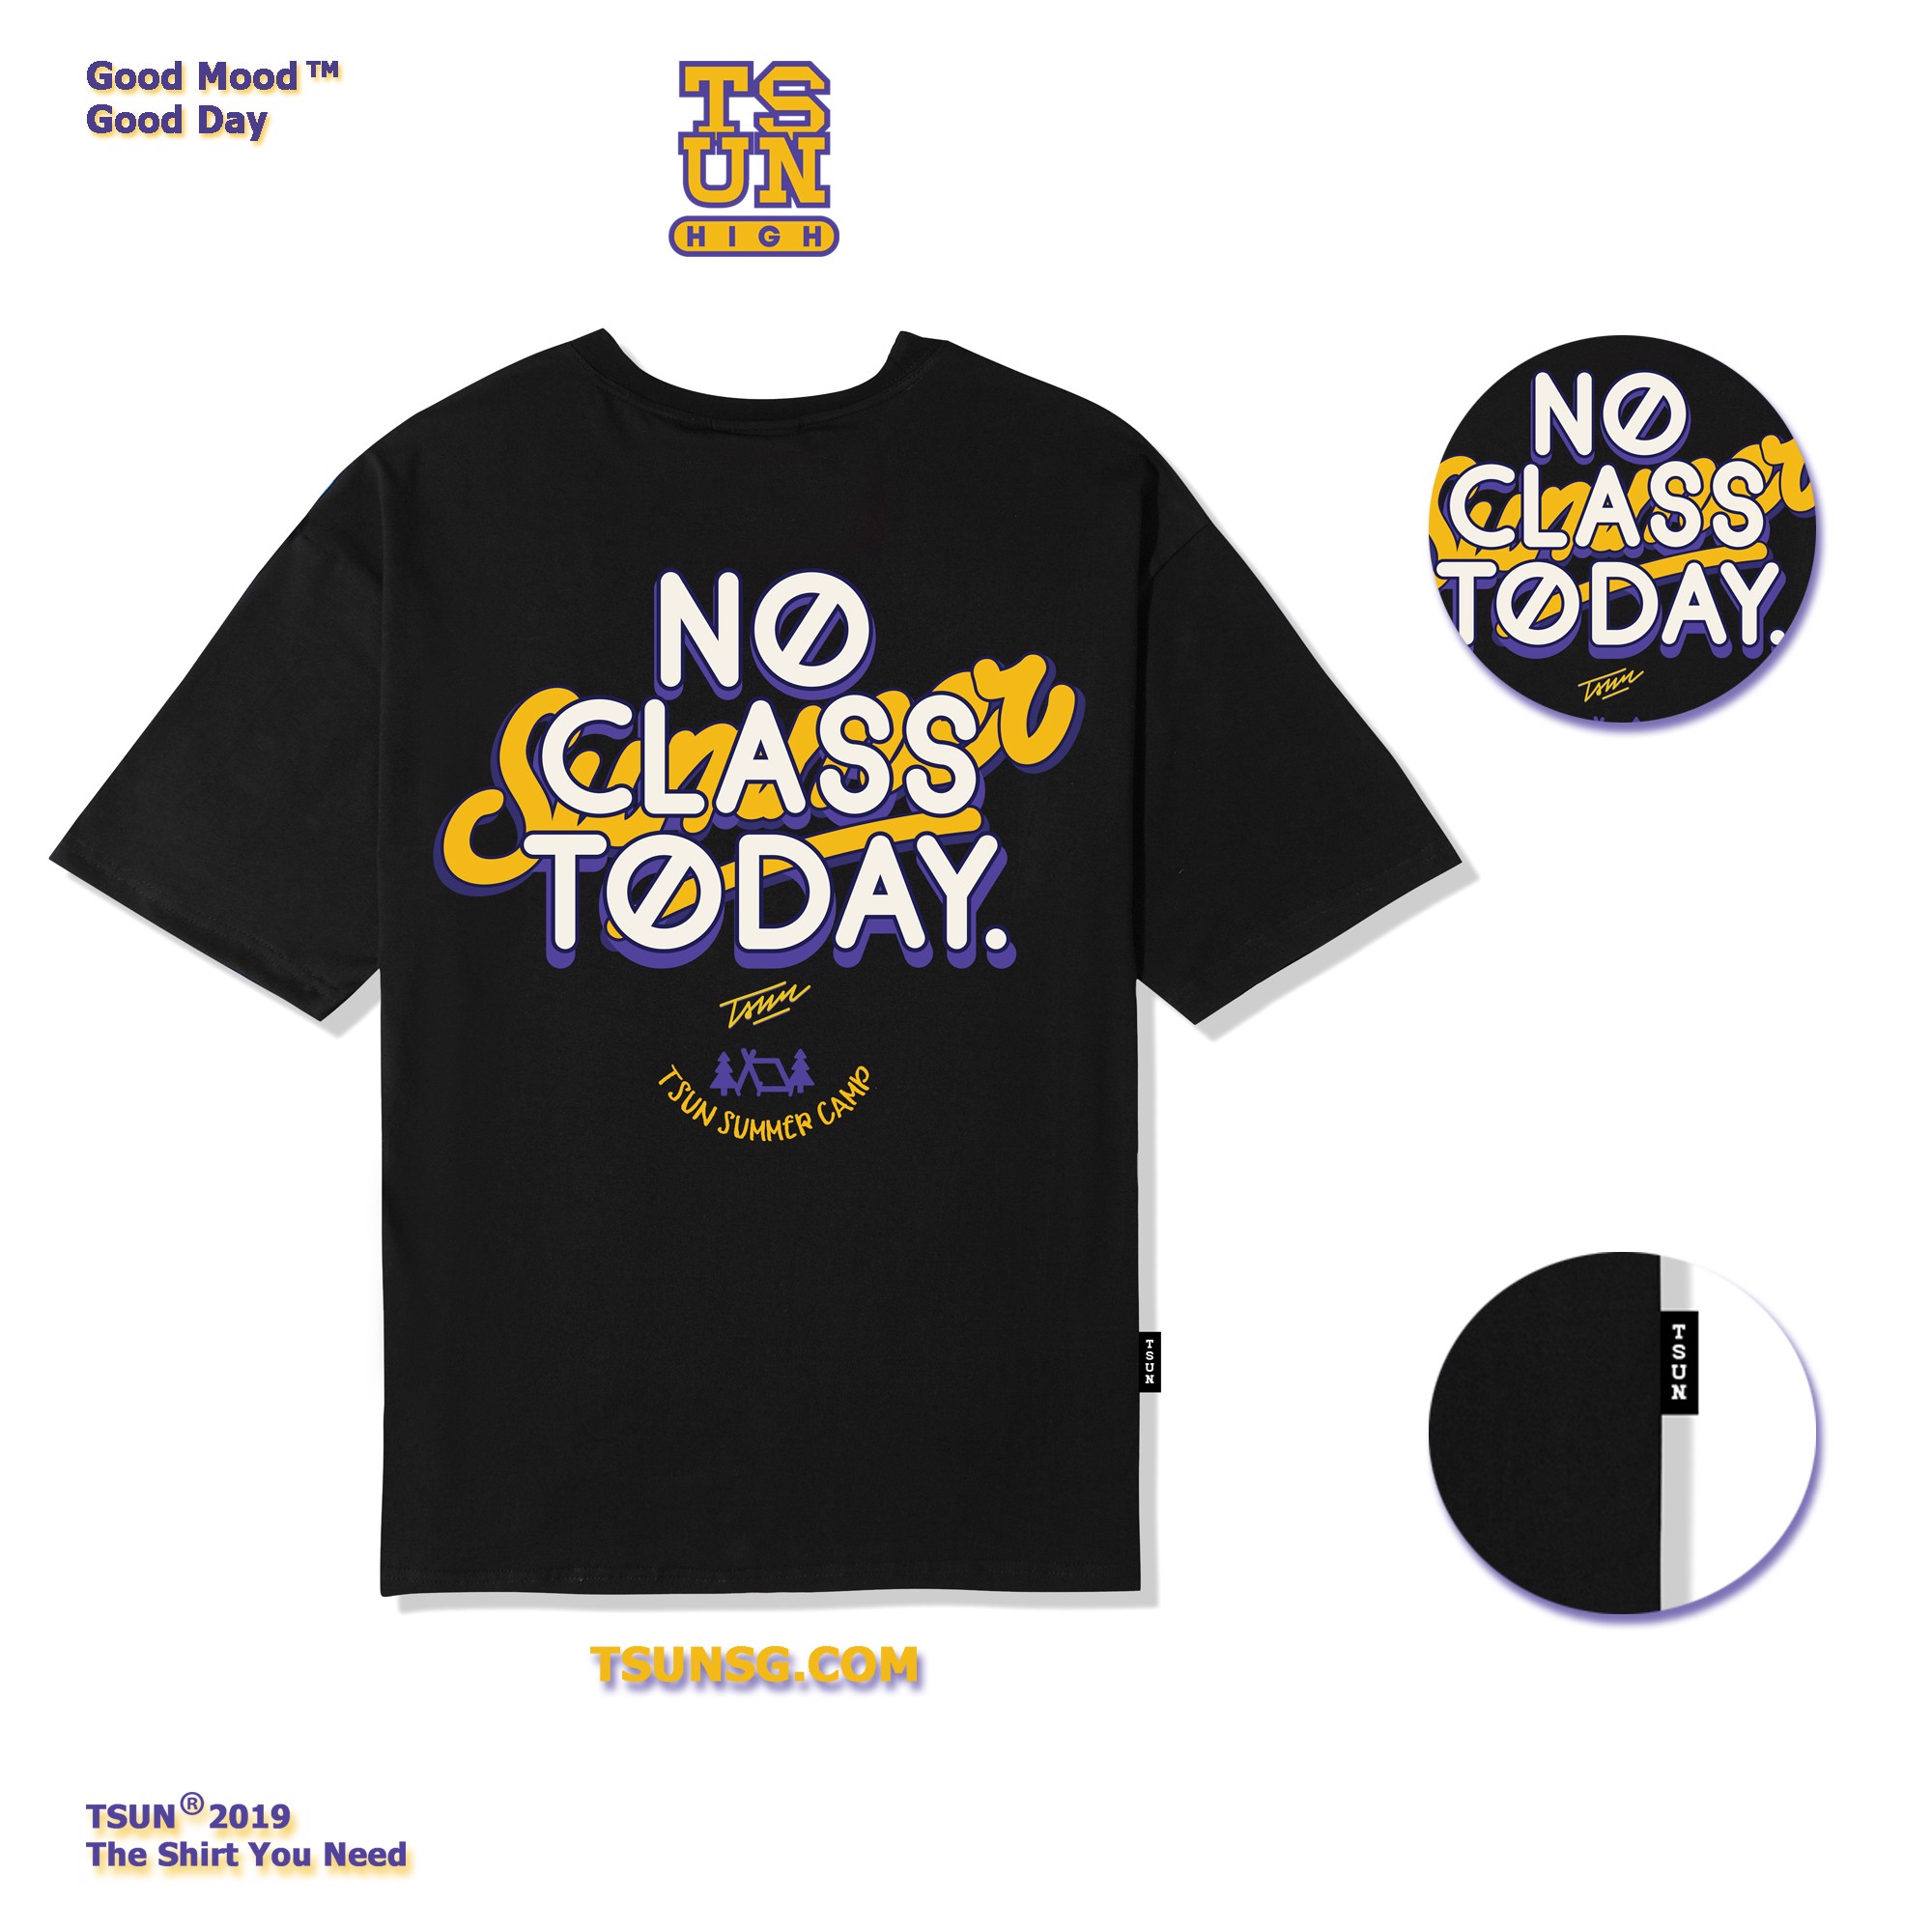 No Class Today (Black)